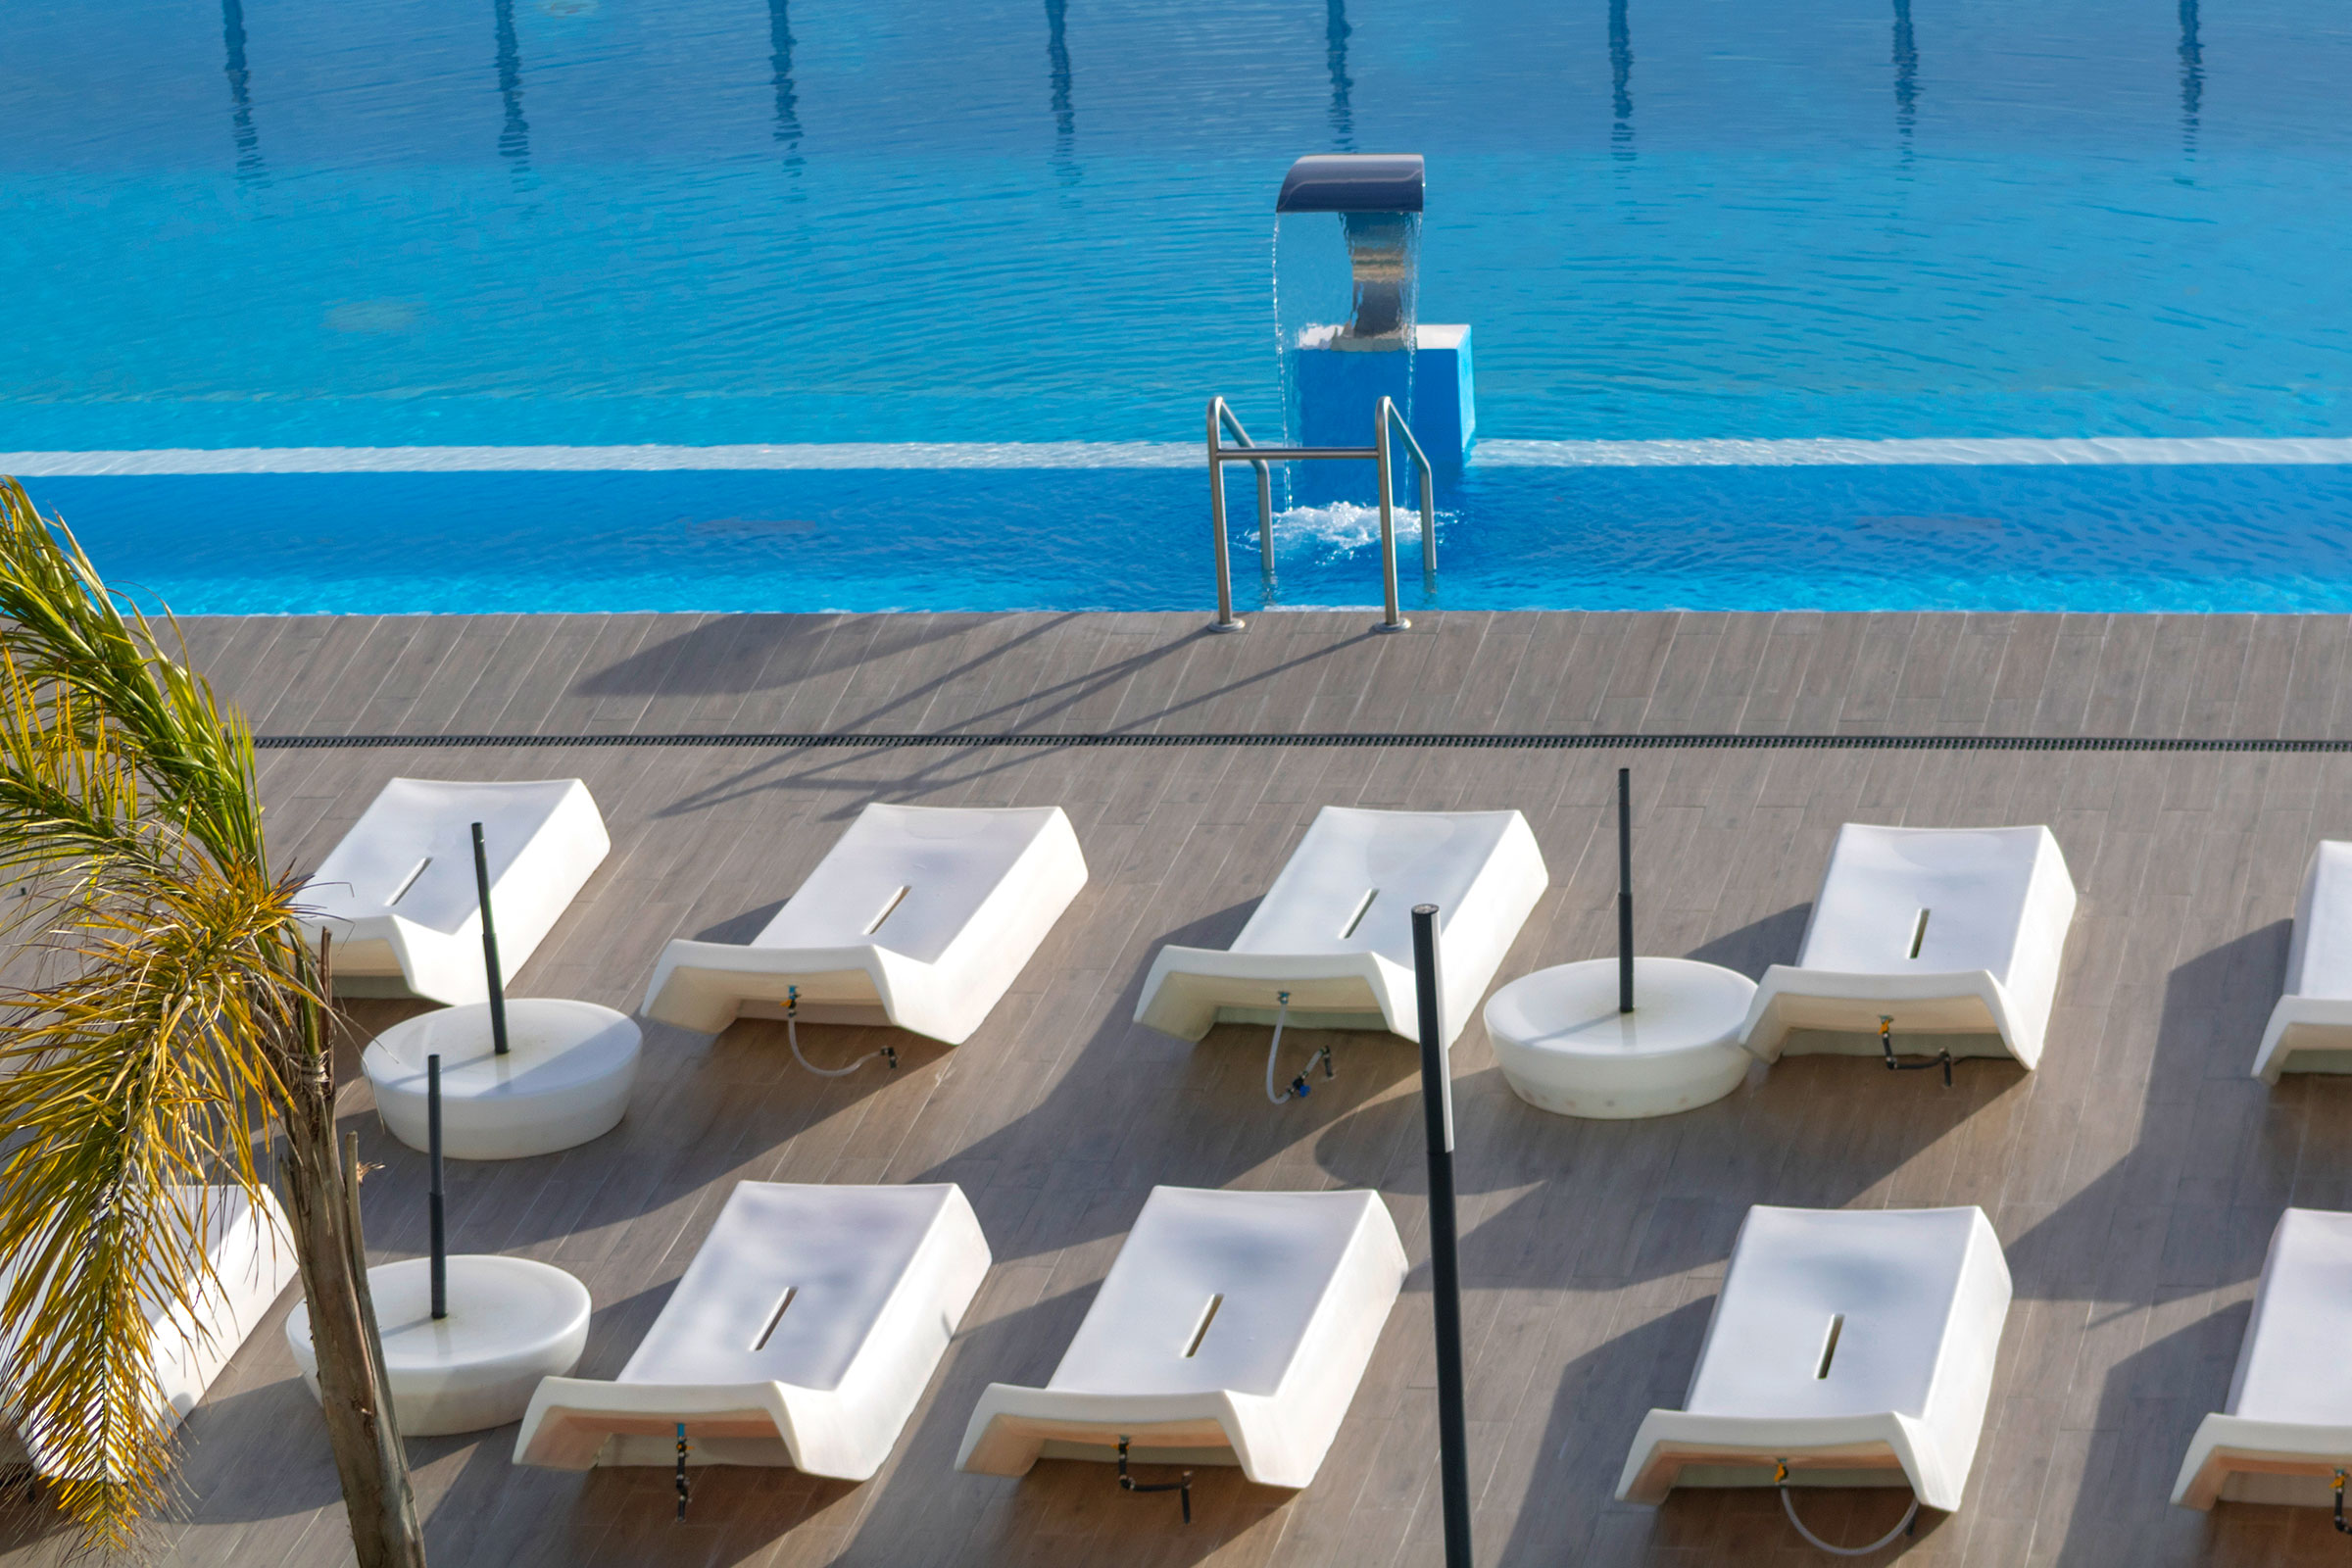 Heated outdoor pool with the help of sun loungers - Lisotel Hotel & Spa